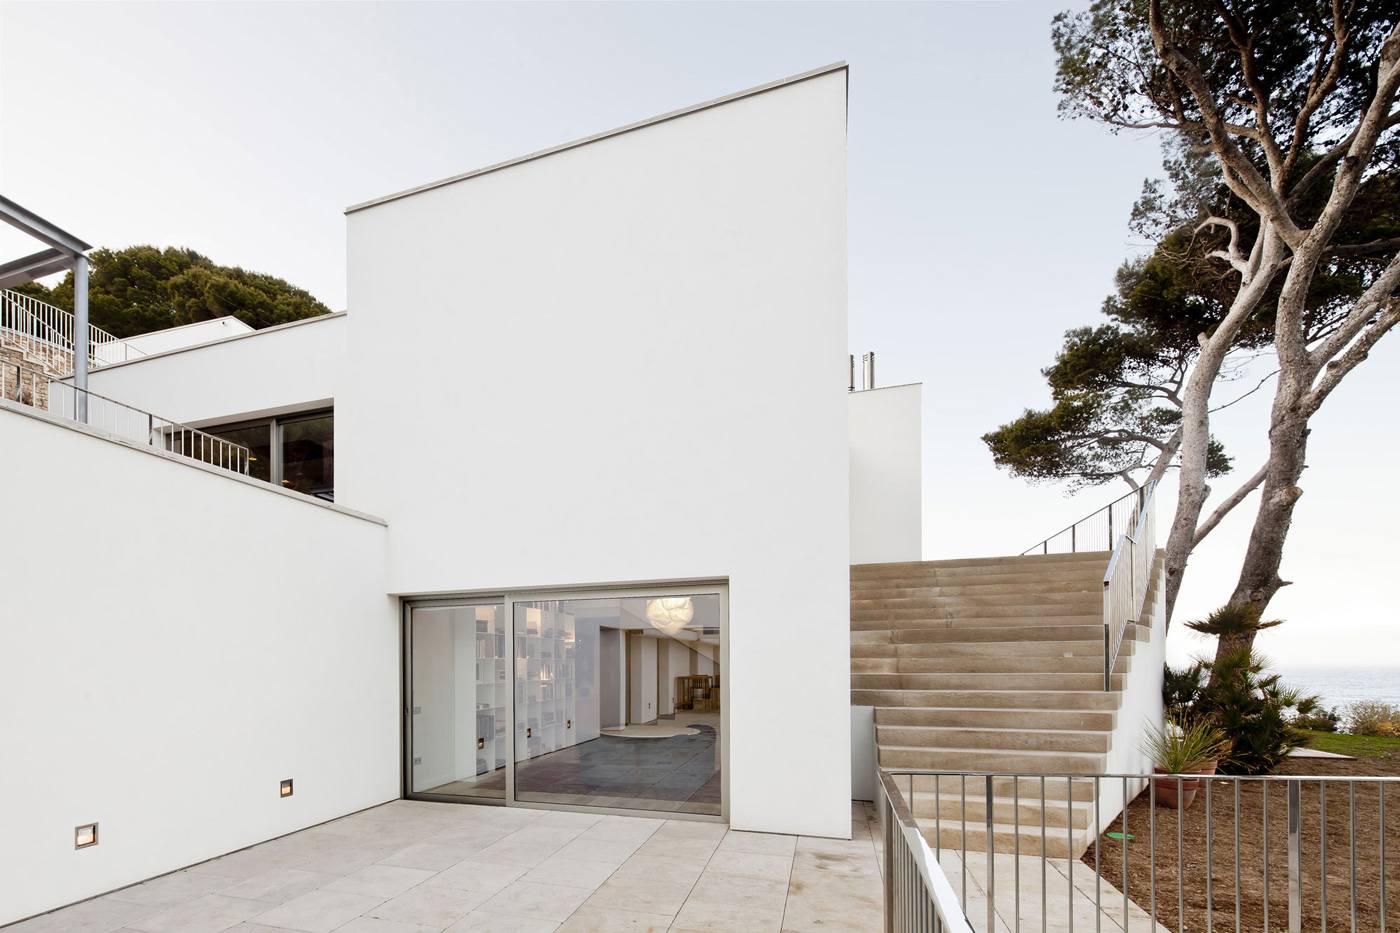 Patio Doors, Terrace, Stairs, Waterfront House in Costa Brava, Spain